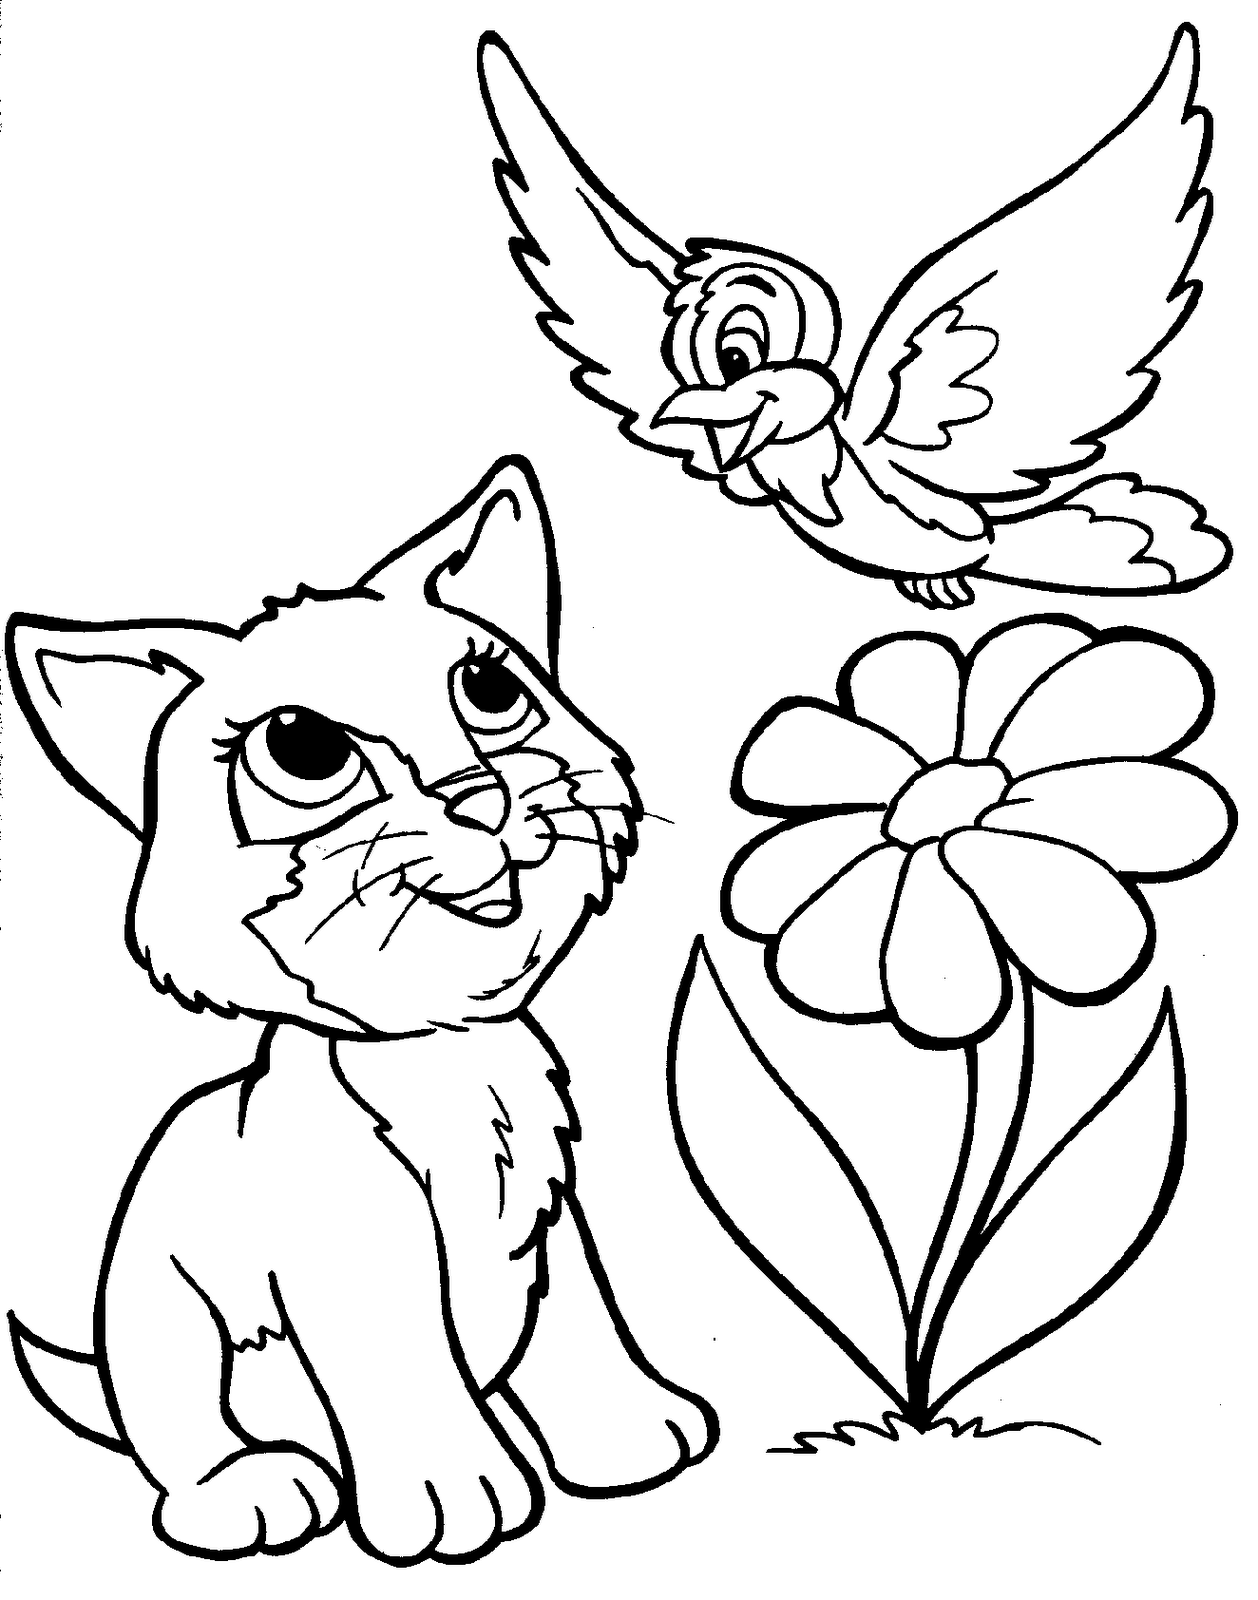 coloring pages cute animals get this cute baby animal coloring pages to print 6fg7s cute coloring pages animals